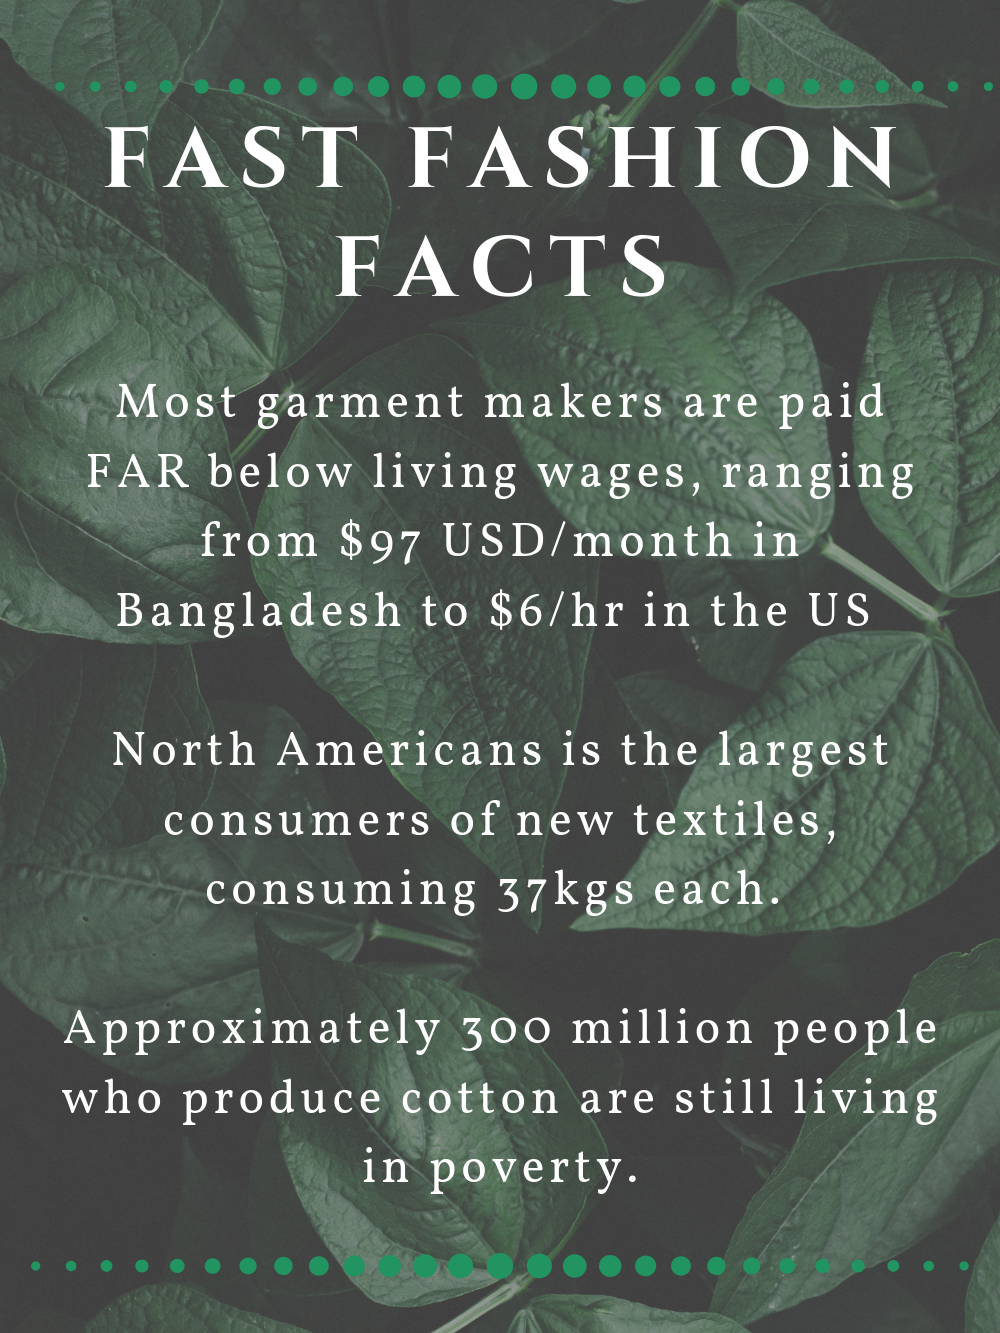 Fast Fashion Facts Infographic 2